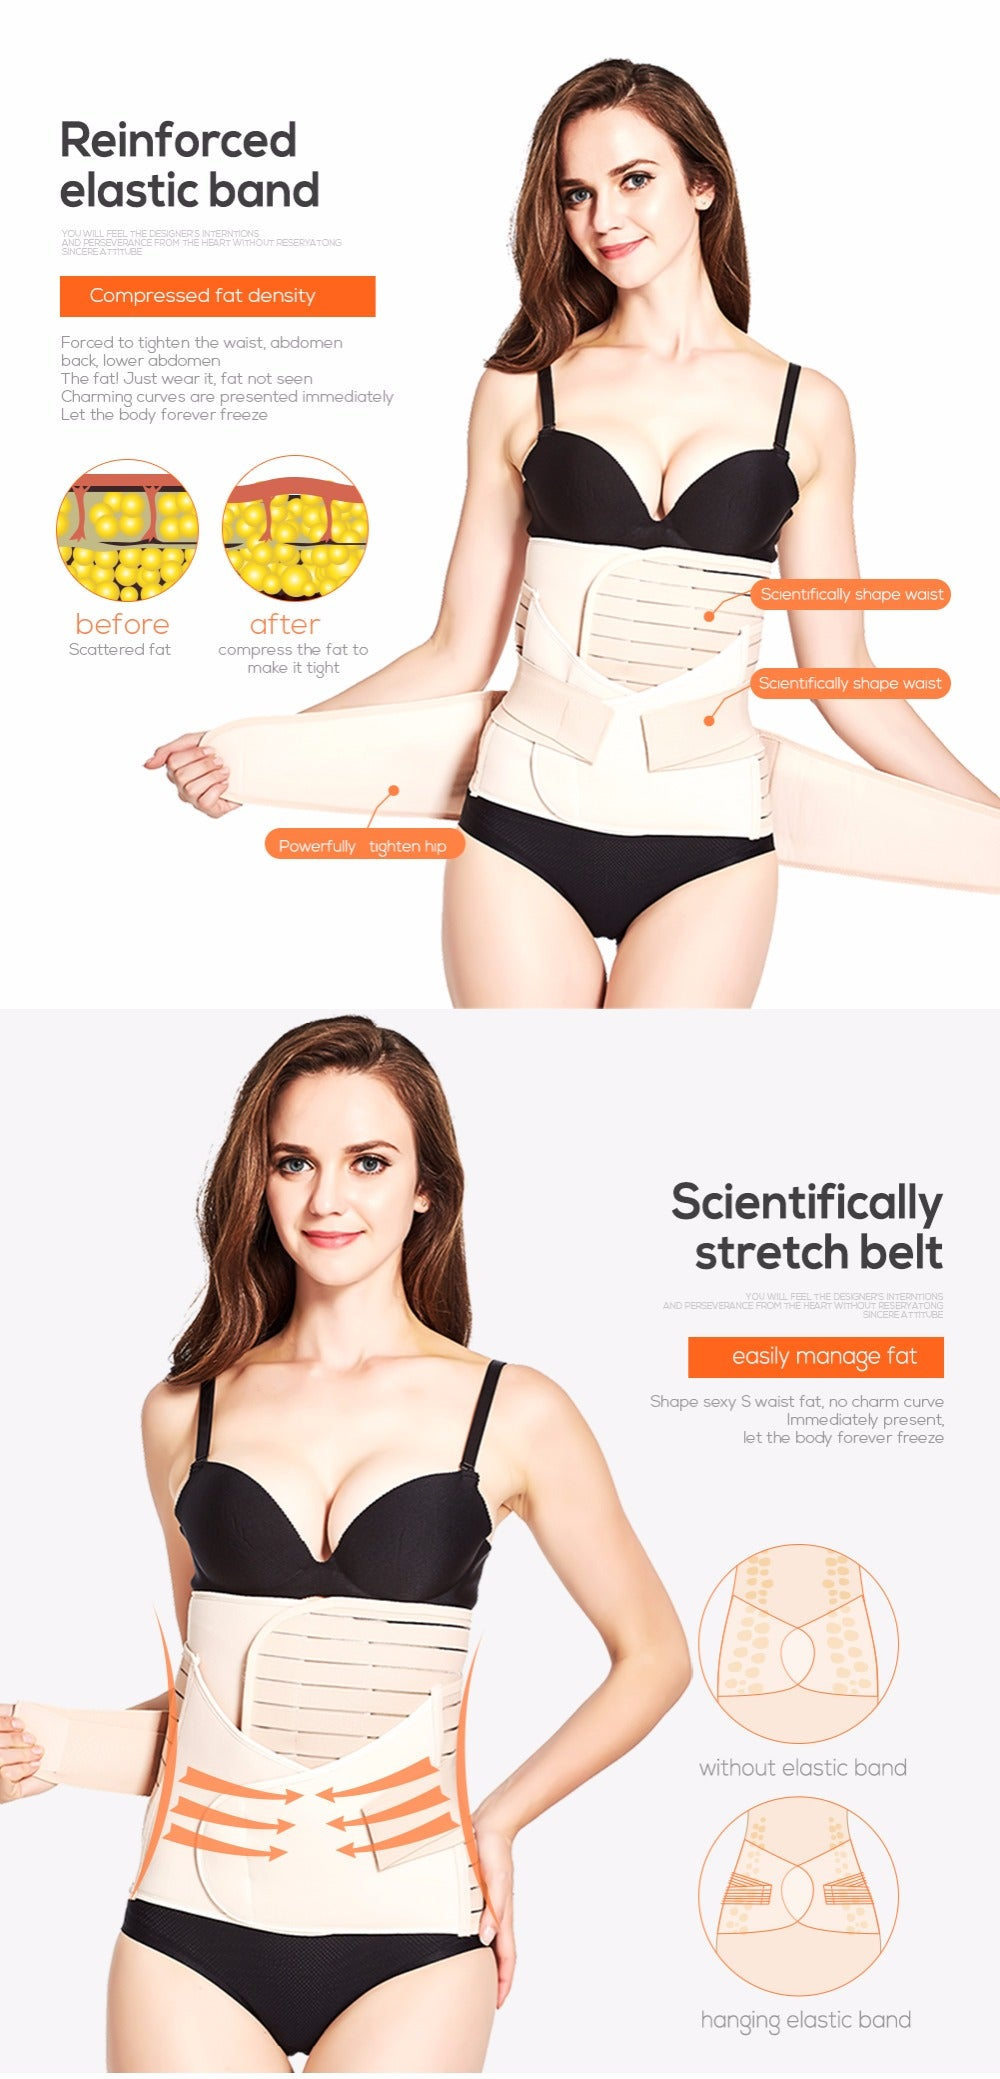 Waist Trainer Body Shaper Postpartum Corset 3-in-1 Slimming Belt Weight Loss Body Shaper Shapewear